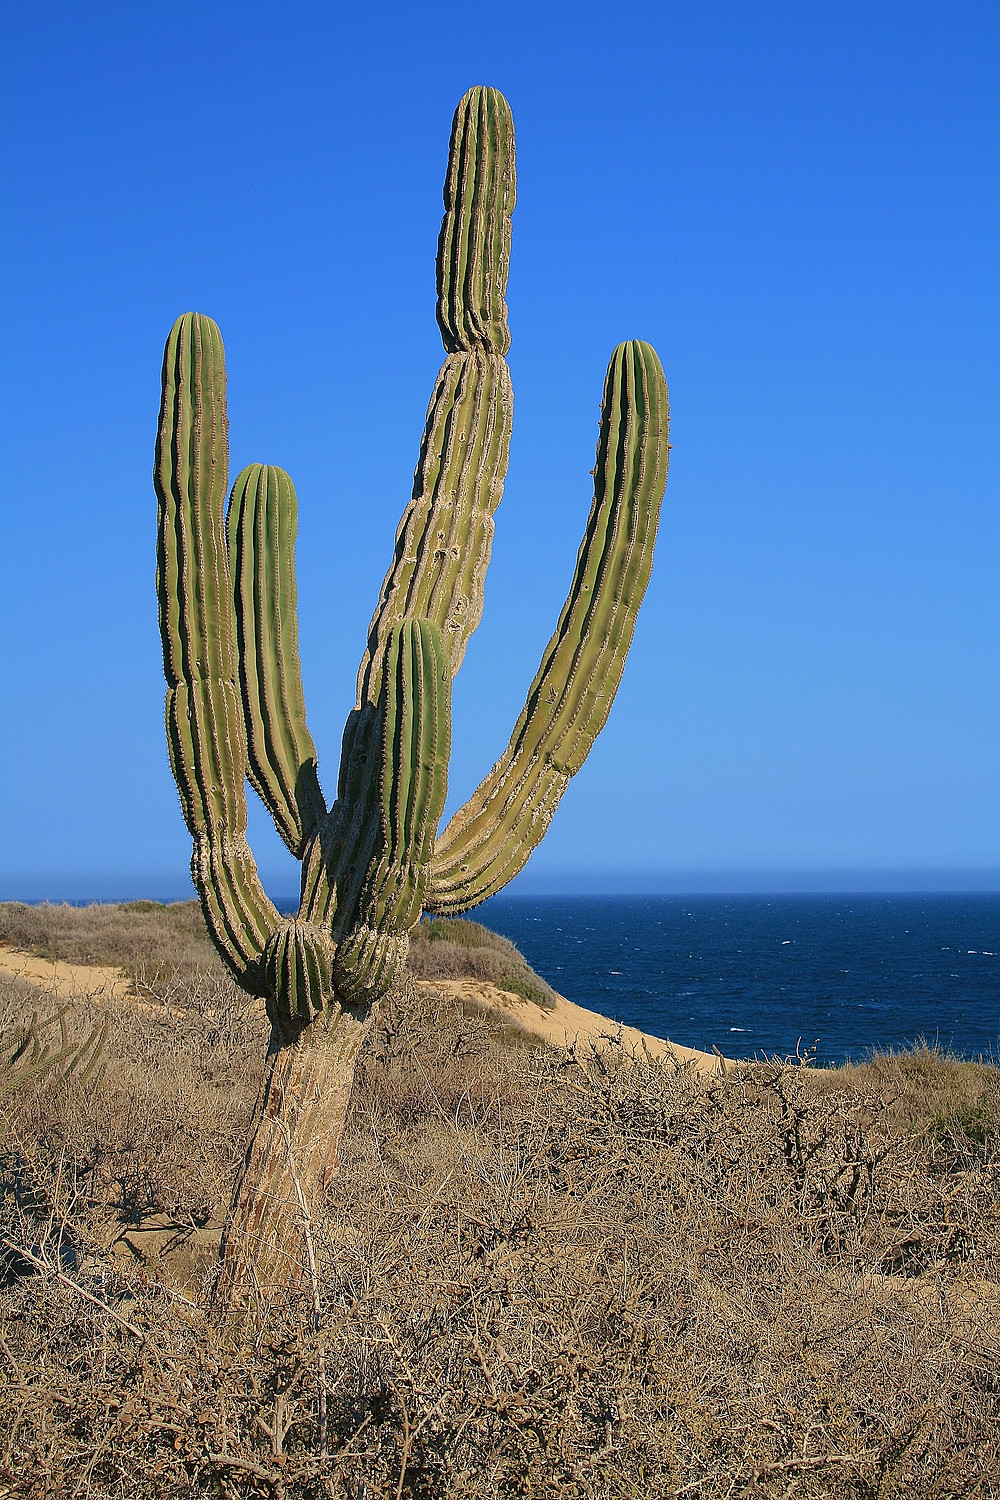 Typically Mexico; drought and cactus